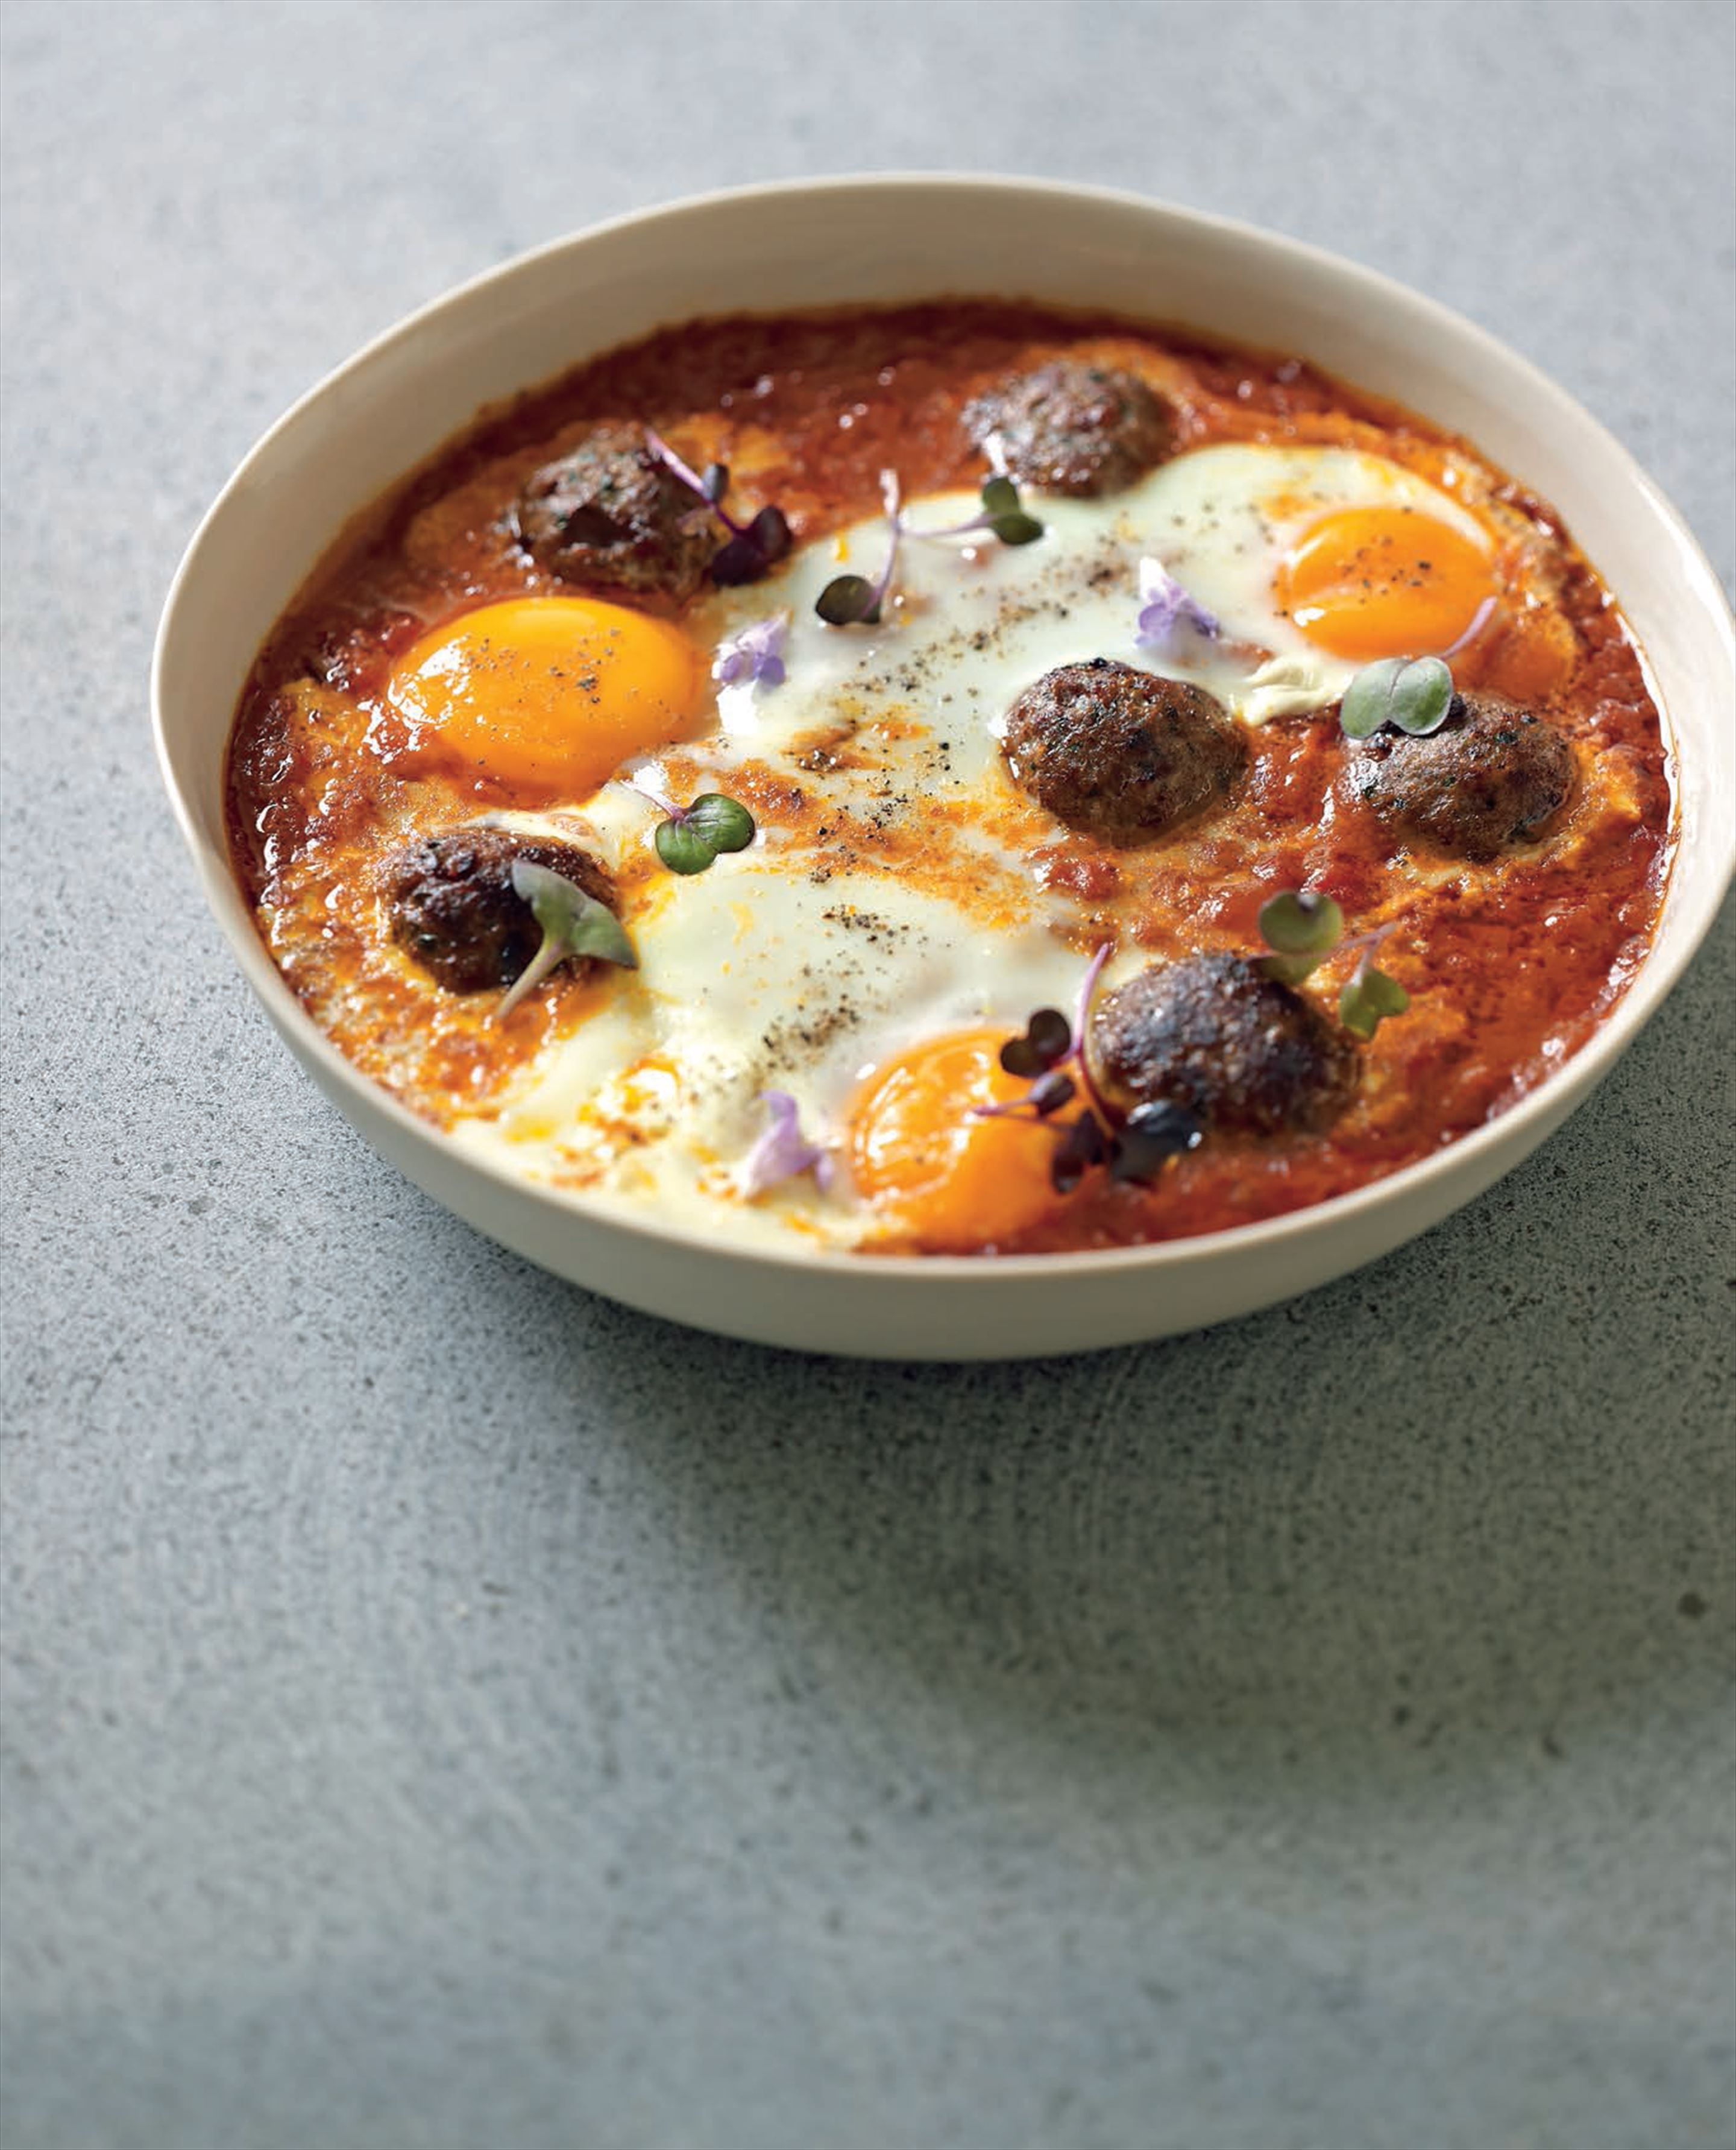 Lamb kifta tagine with eggs